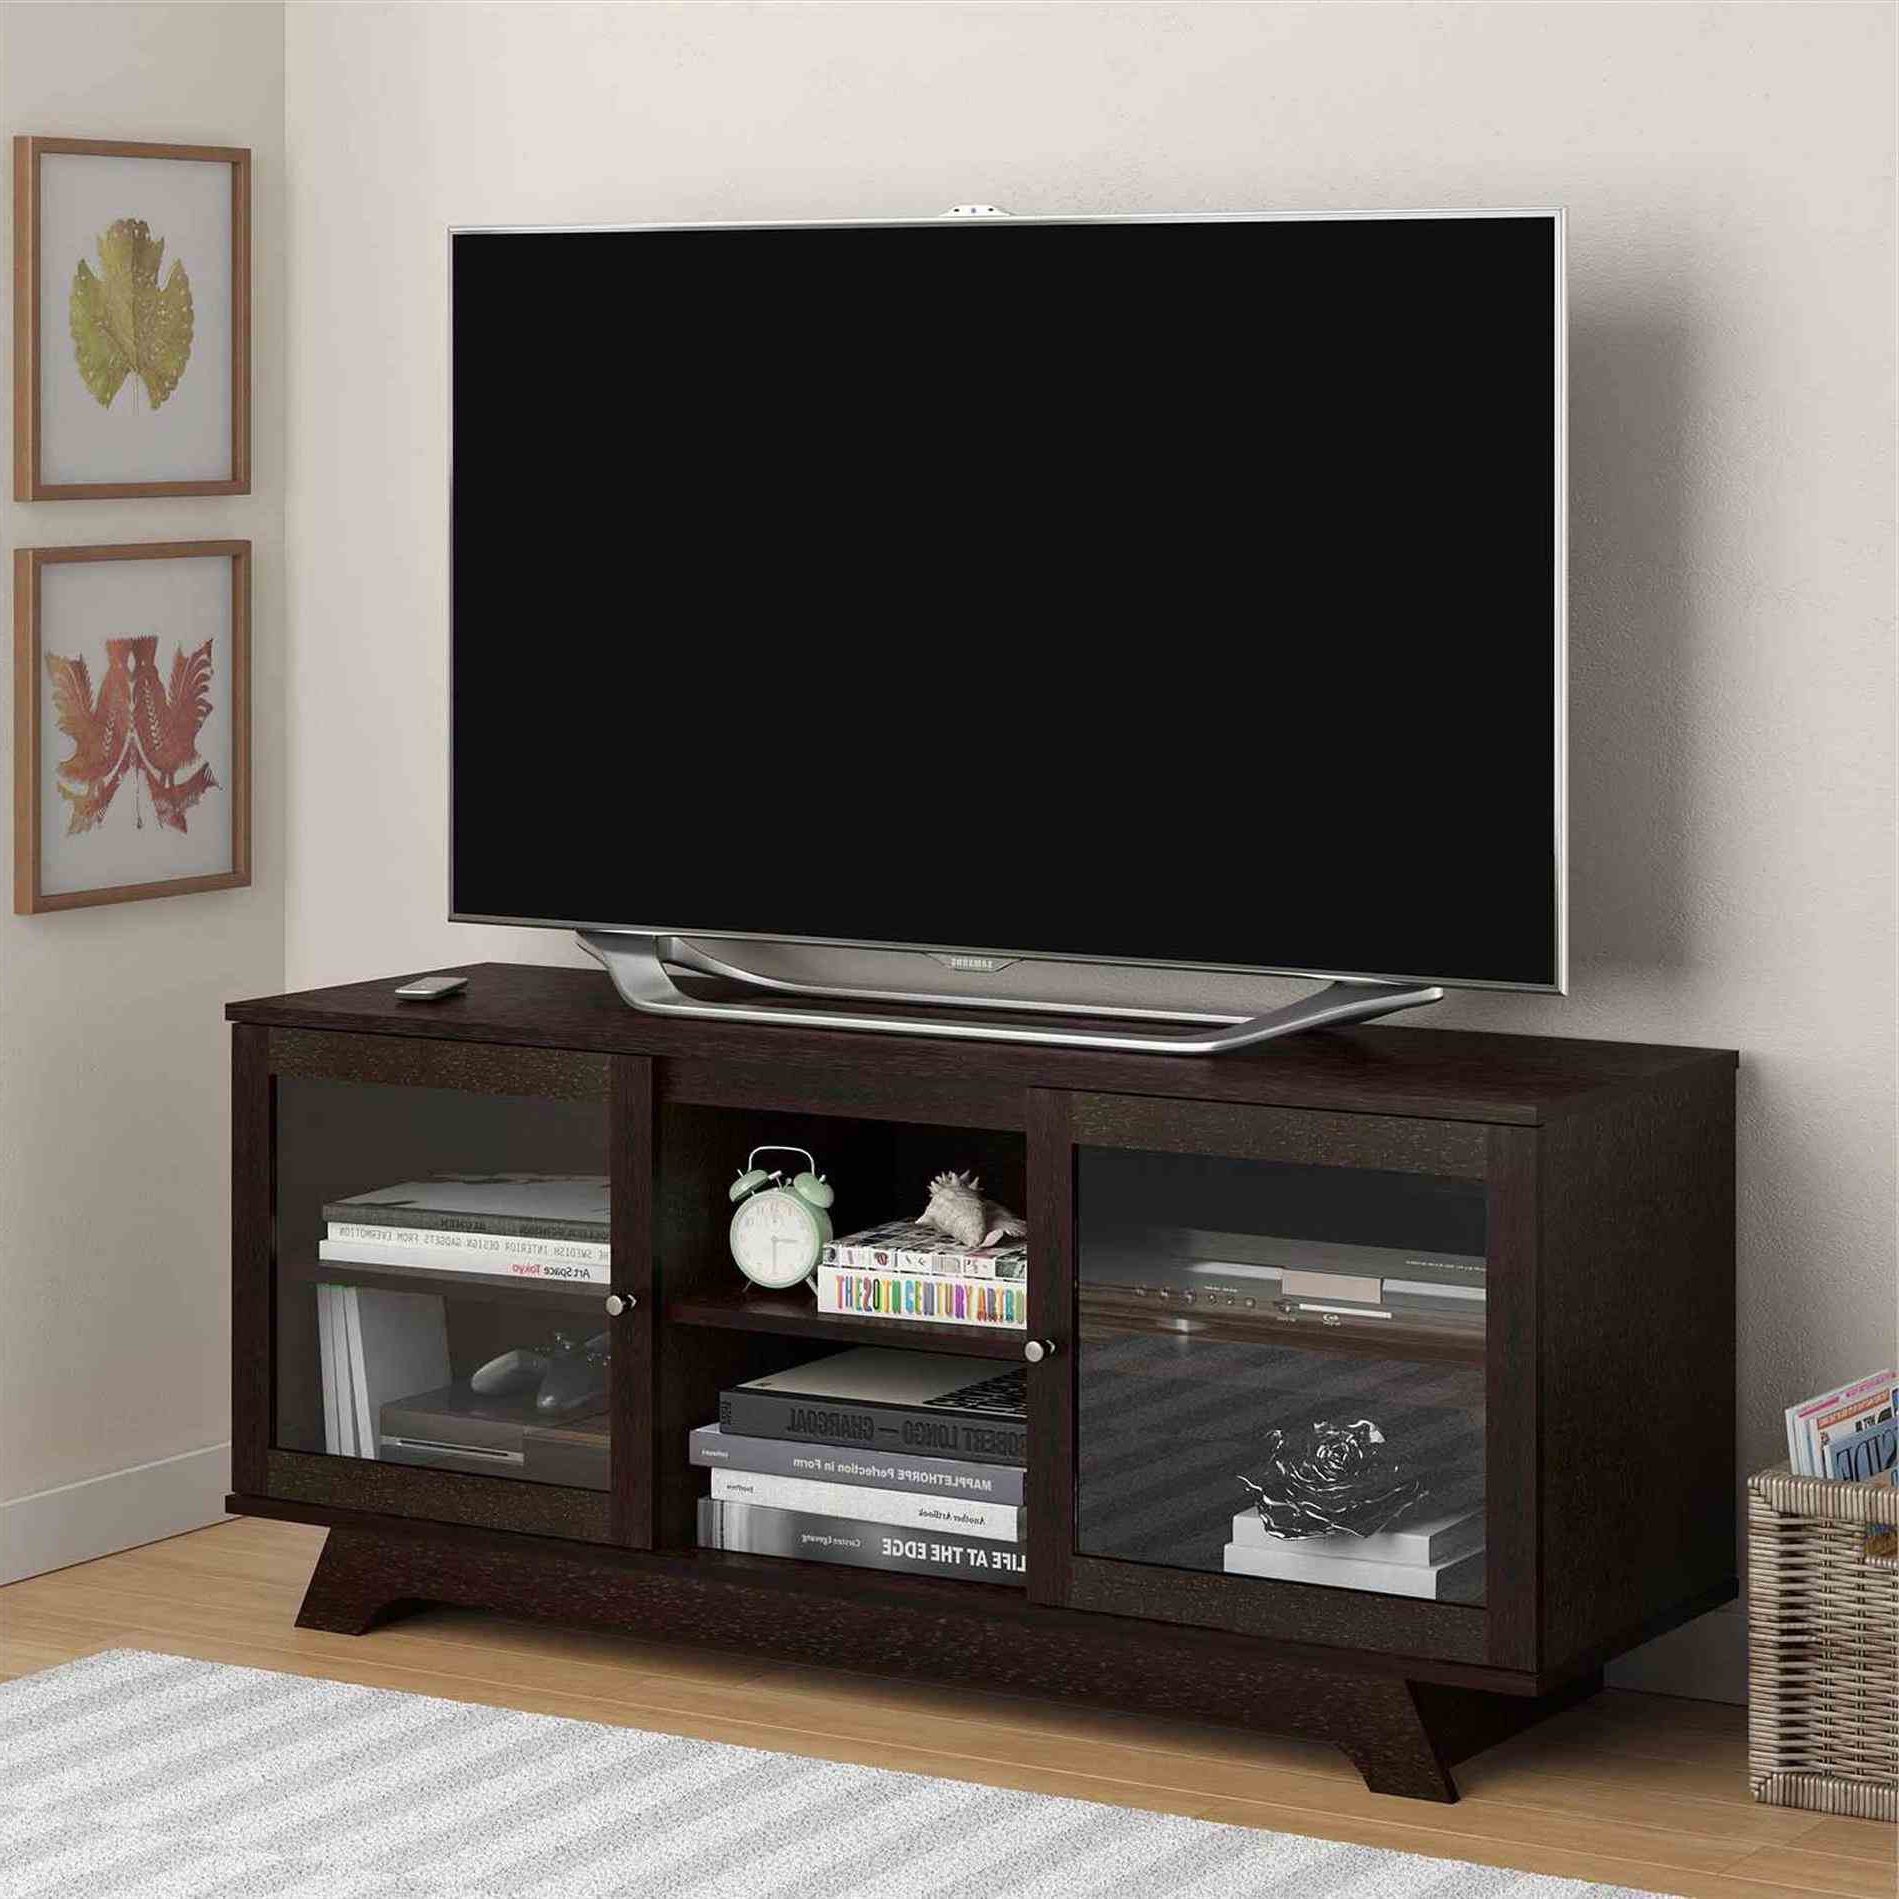 Oak Entertainment Center Wall Units Rc Willey Sale Delivery Draper In Draper 62 Inch Tv Stands (View 13 of 20)